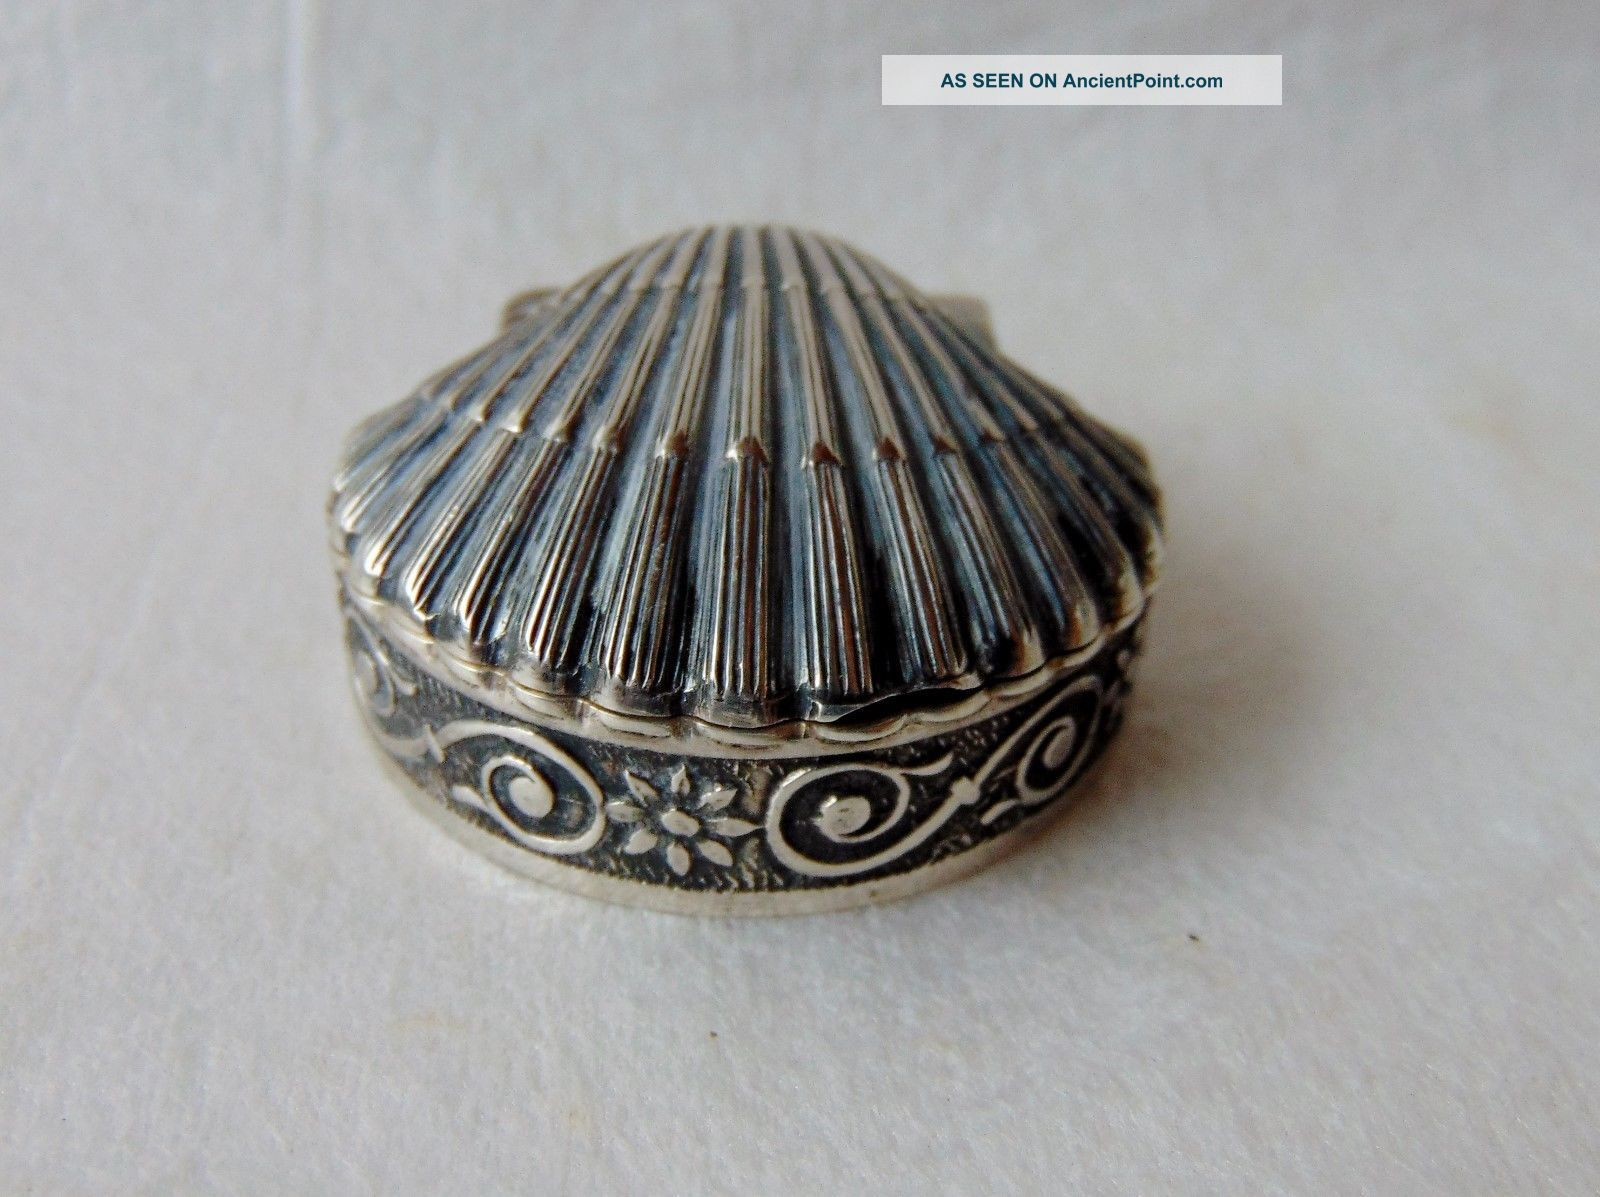 Vintage Sterling Silver Hinged Scallop Shell Pill Box Marked 925 Boxes photo